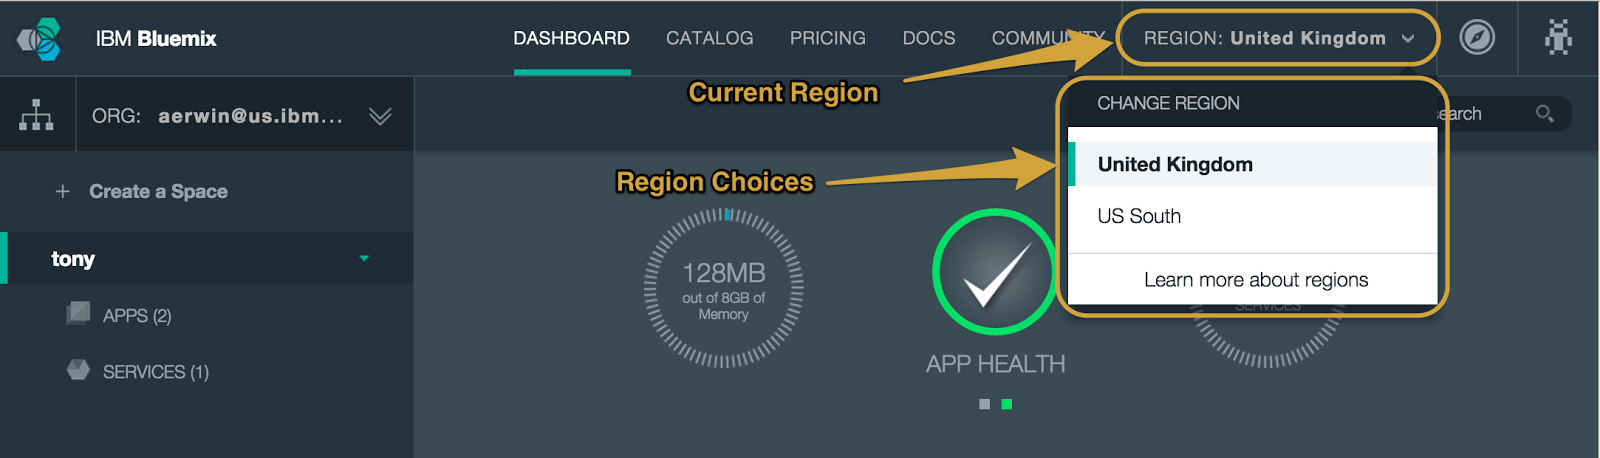 Bluemix UI Updates: Region Selector